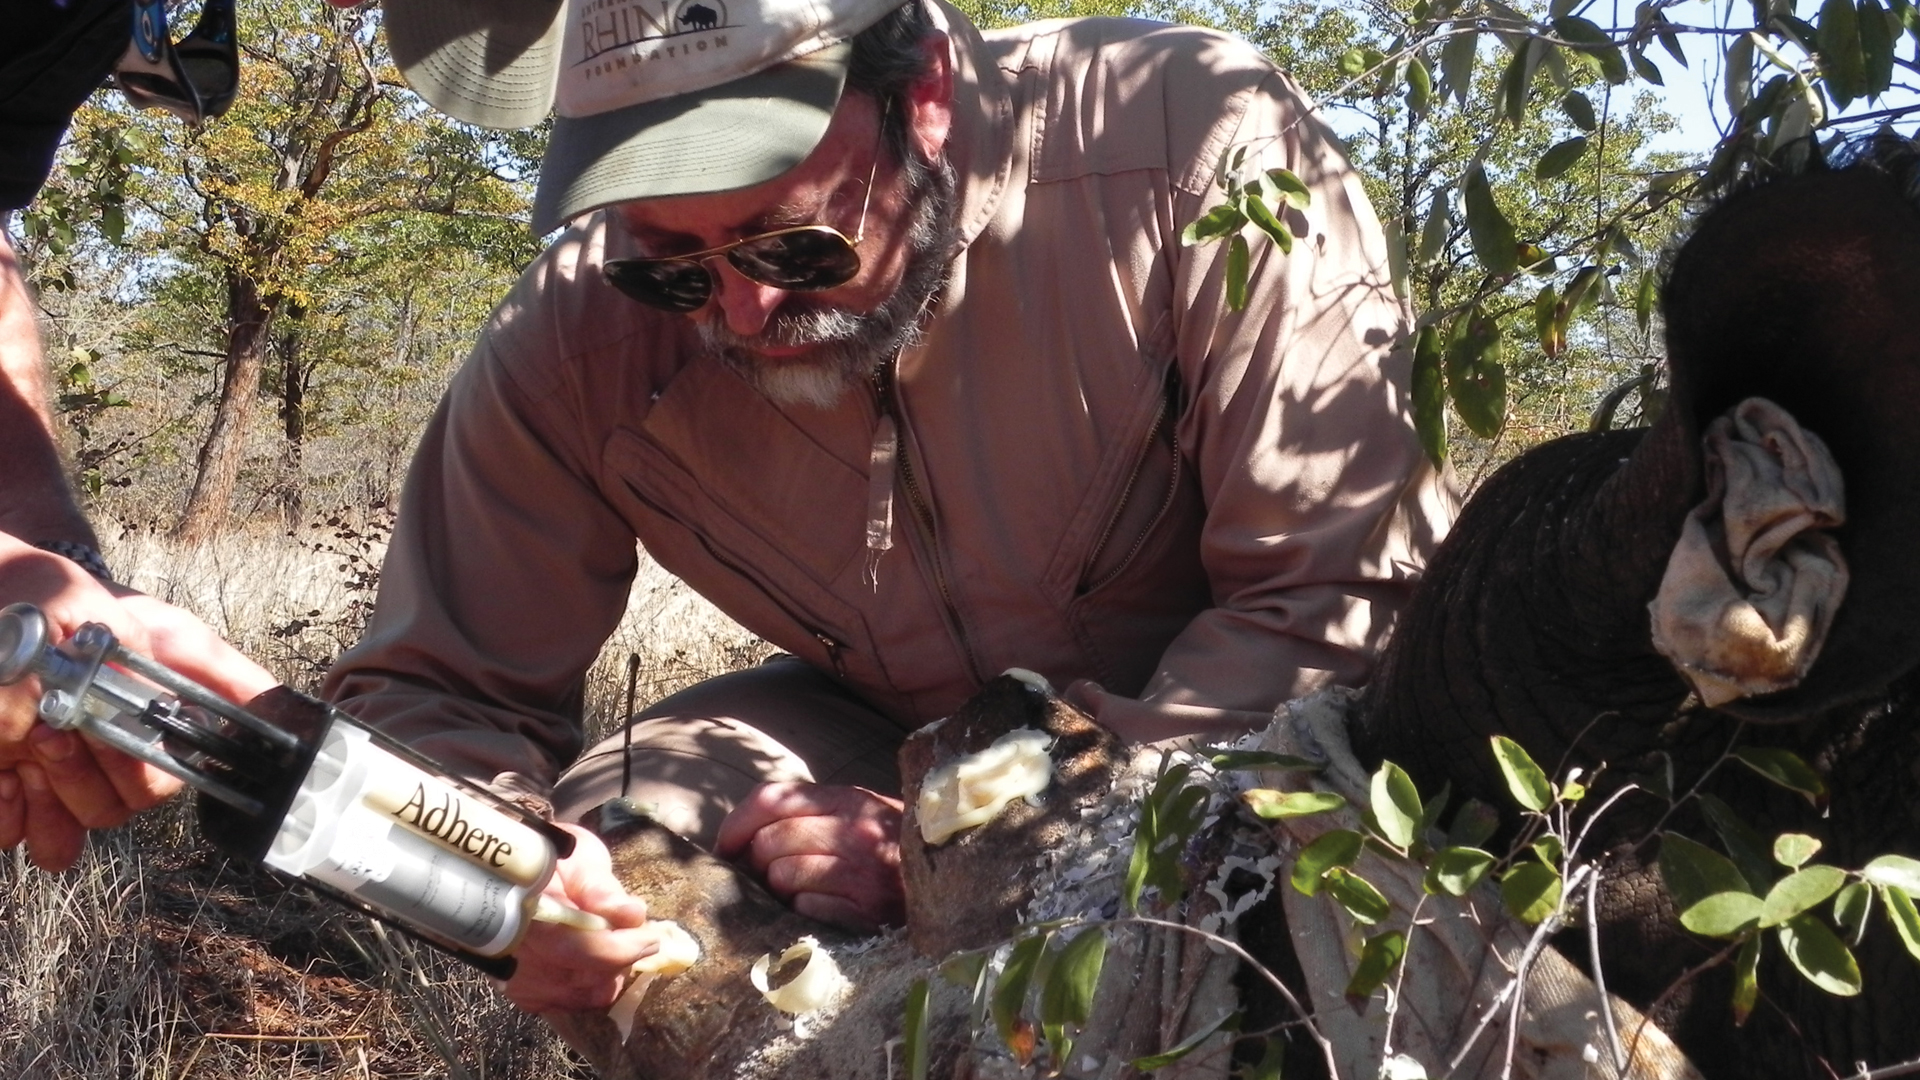 Raoul du Toit tending to a tranquilised rhino